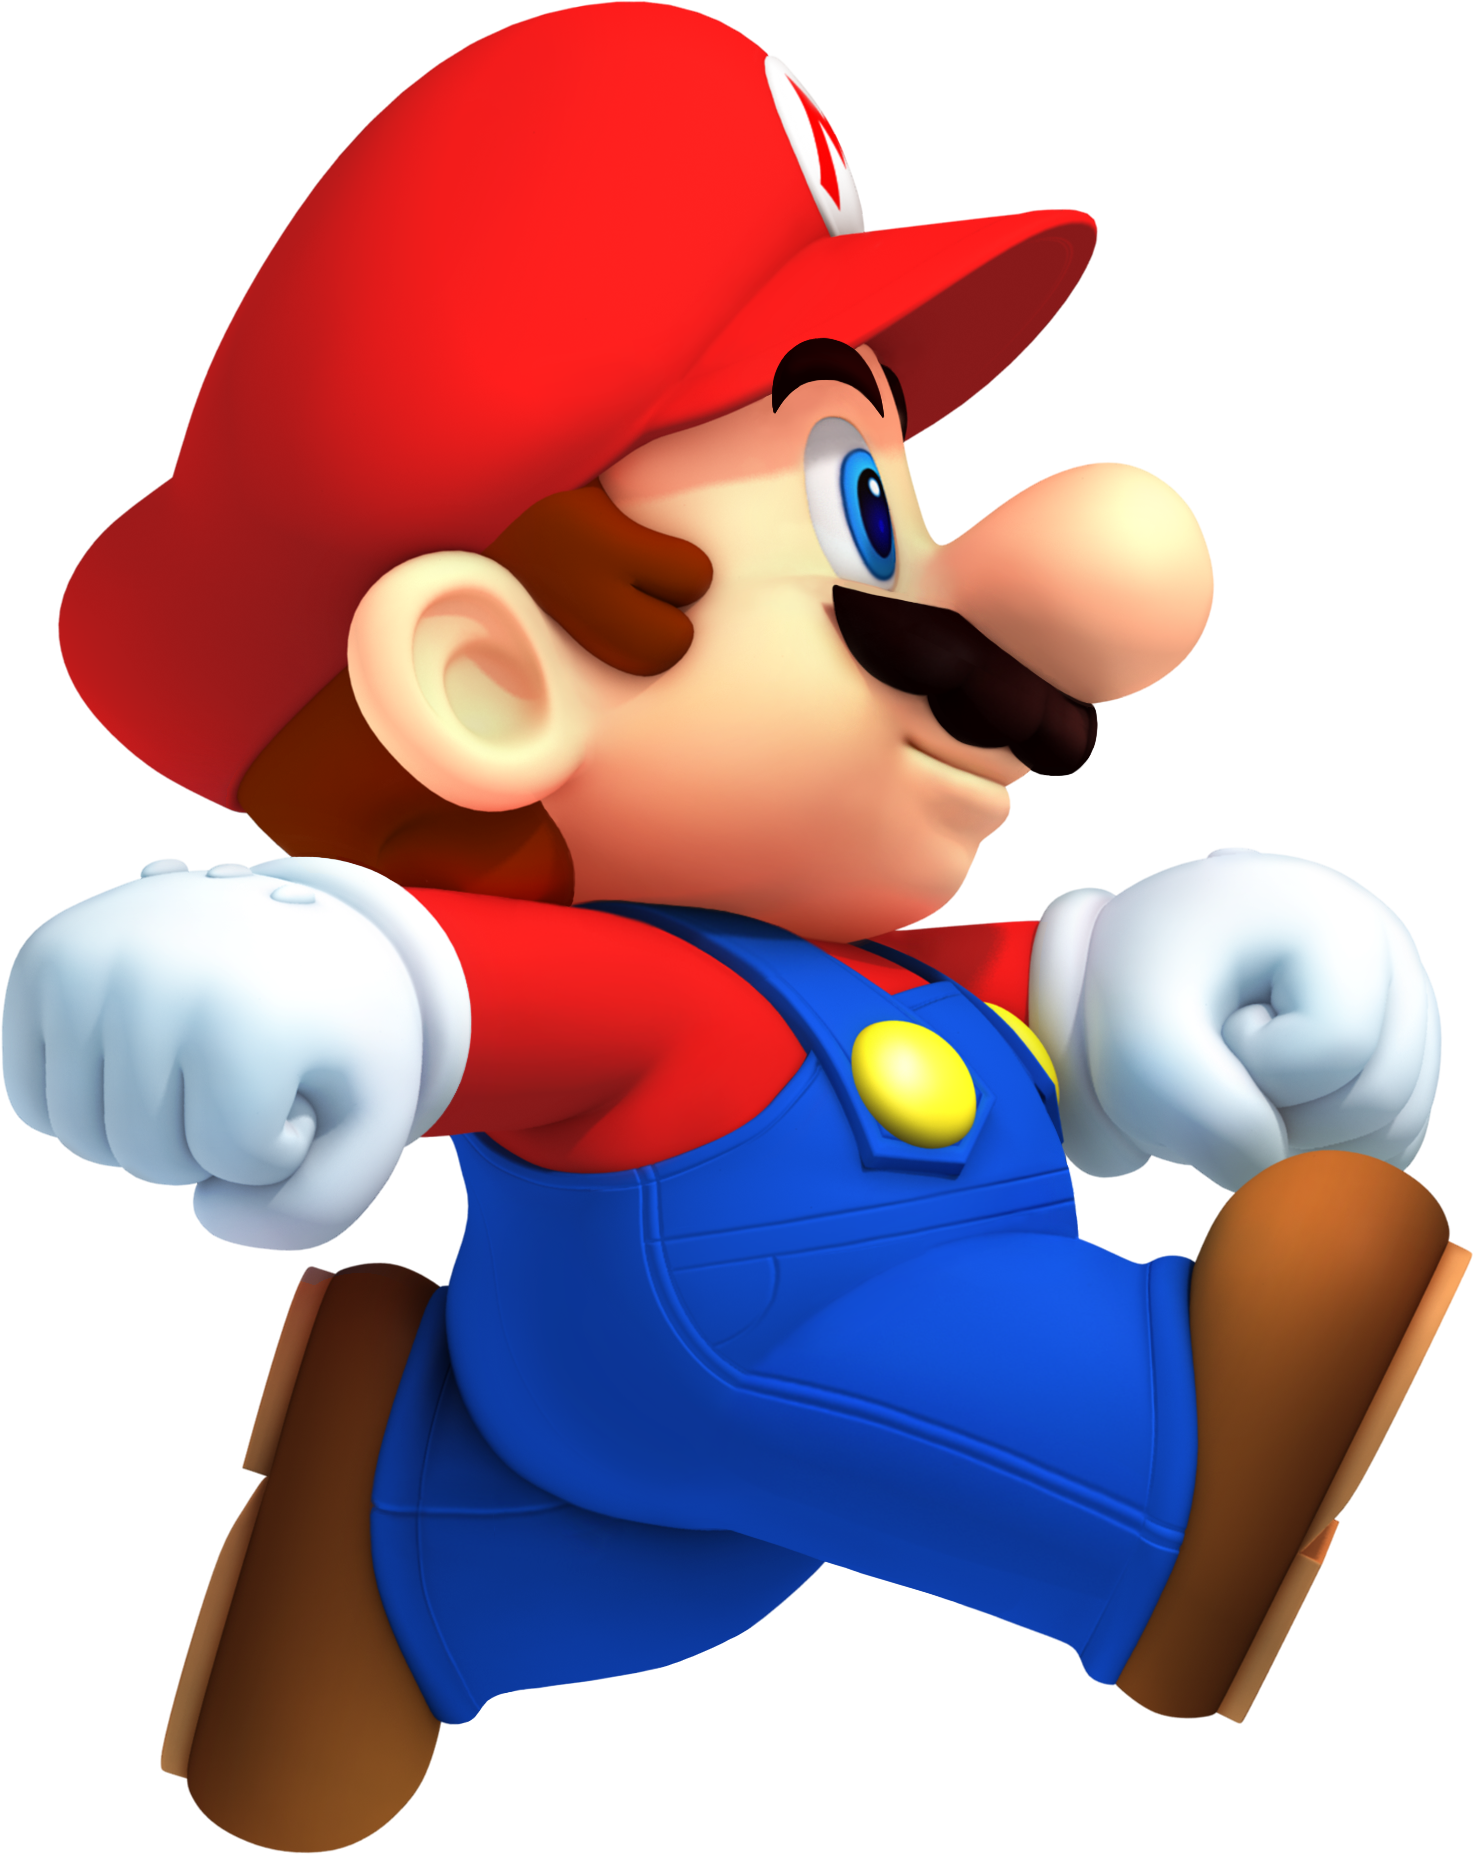 png royalty free stock Free Mario Clipart at GetDrawings